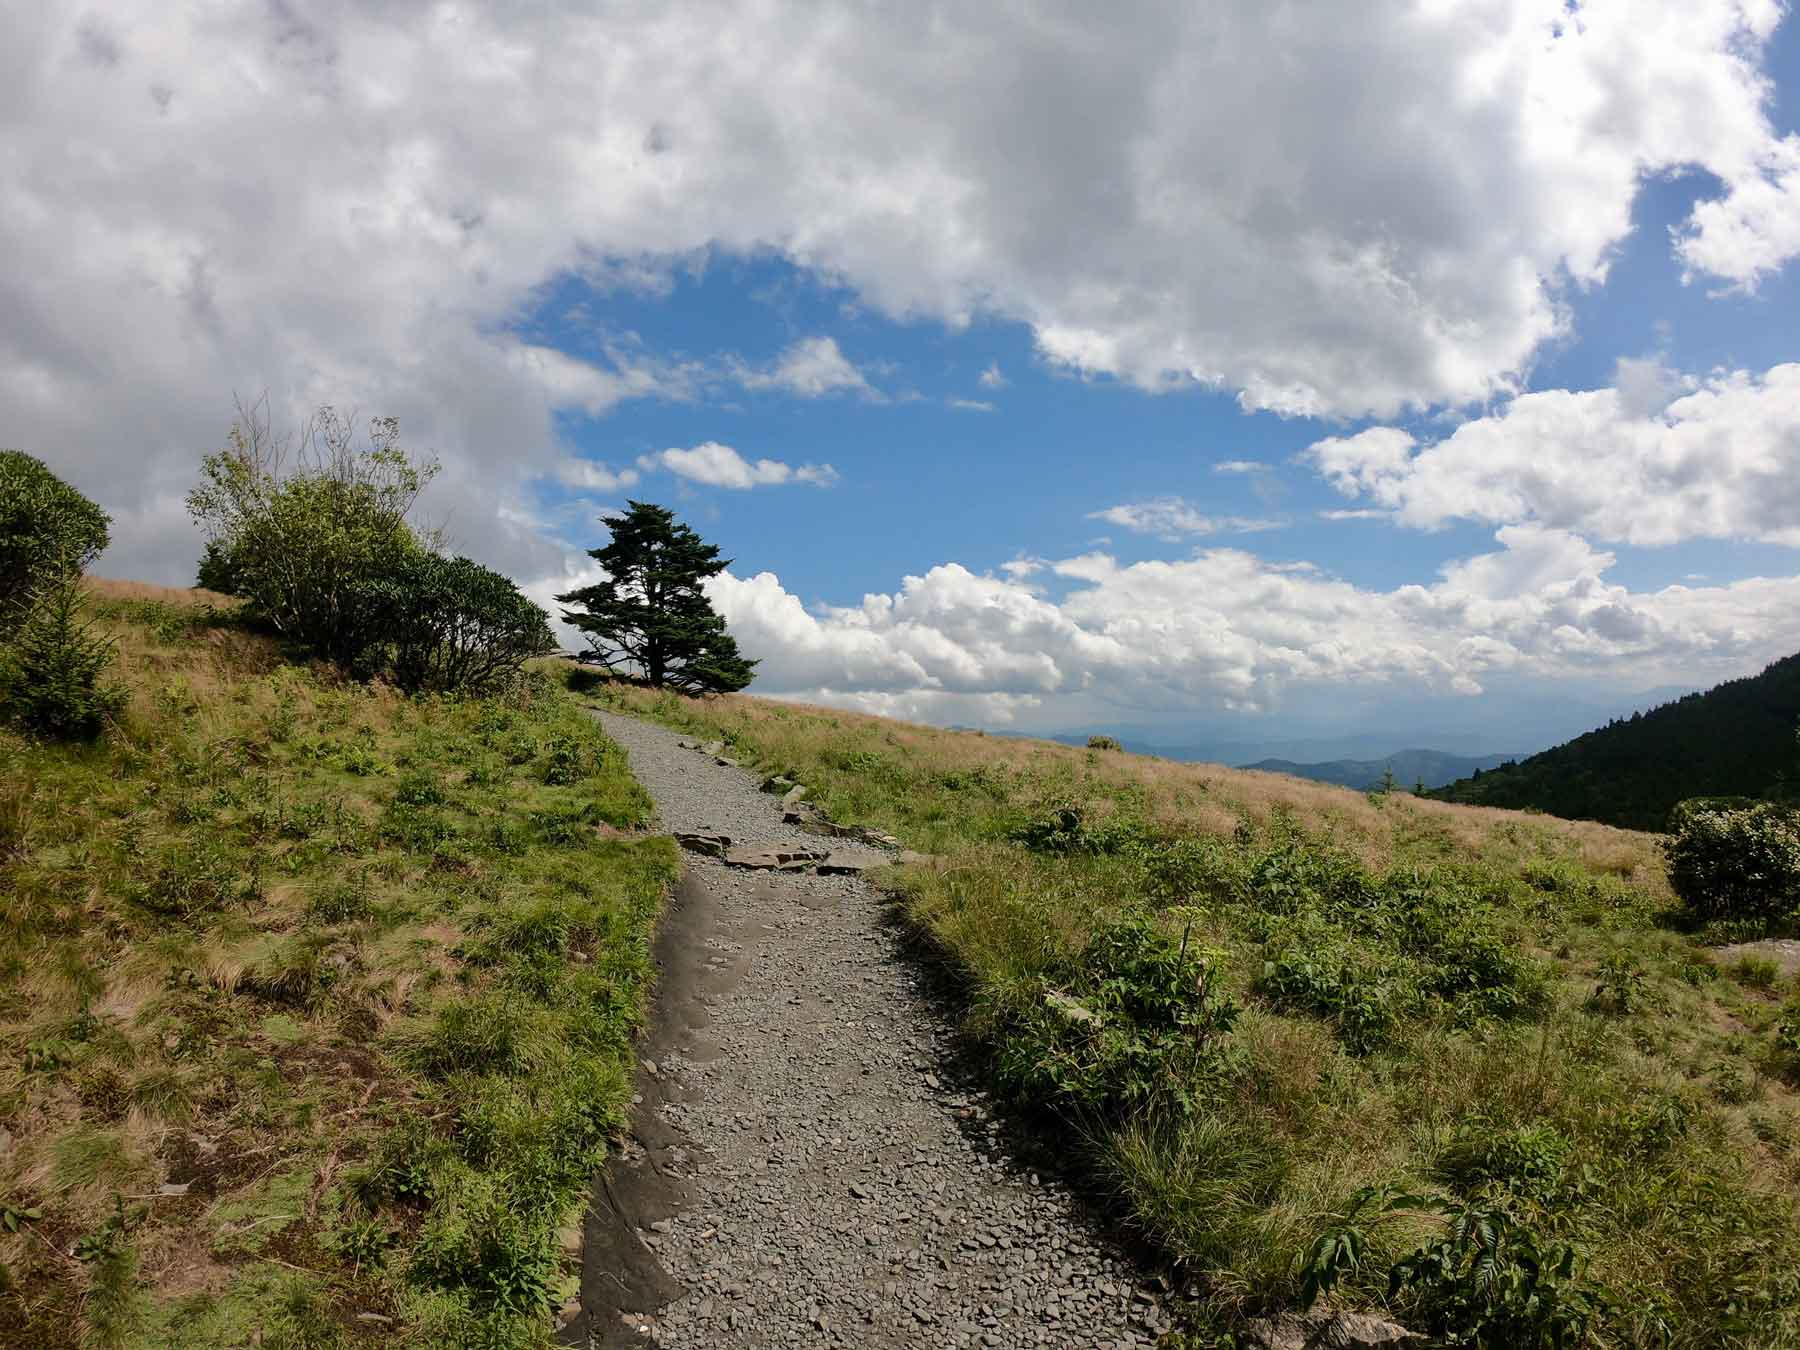 Appalachian Trail leading to Round Bald with blue skies near Roan Mountain State Park, Tennessee